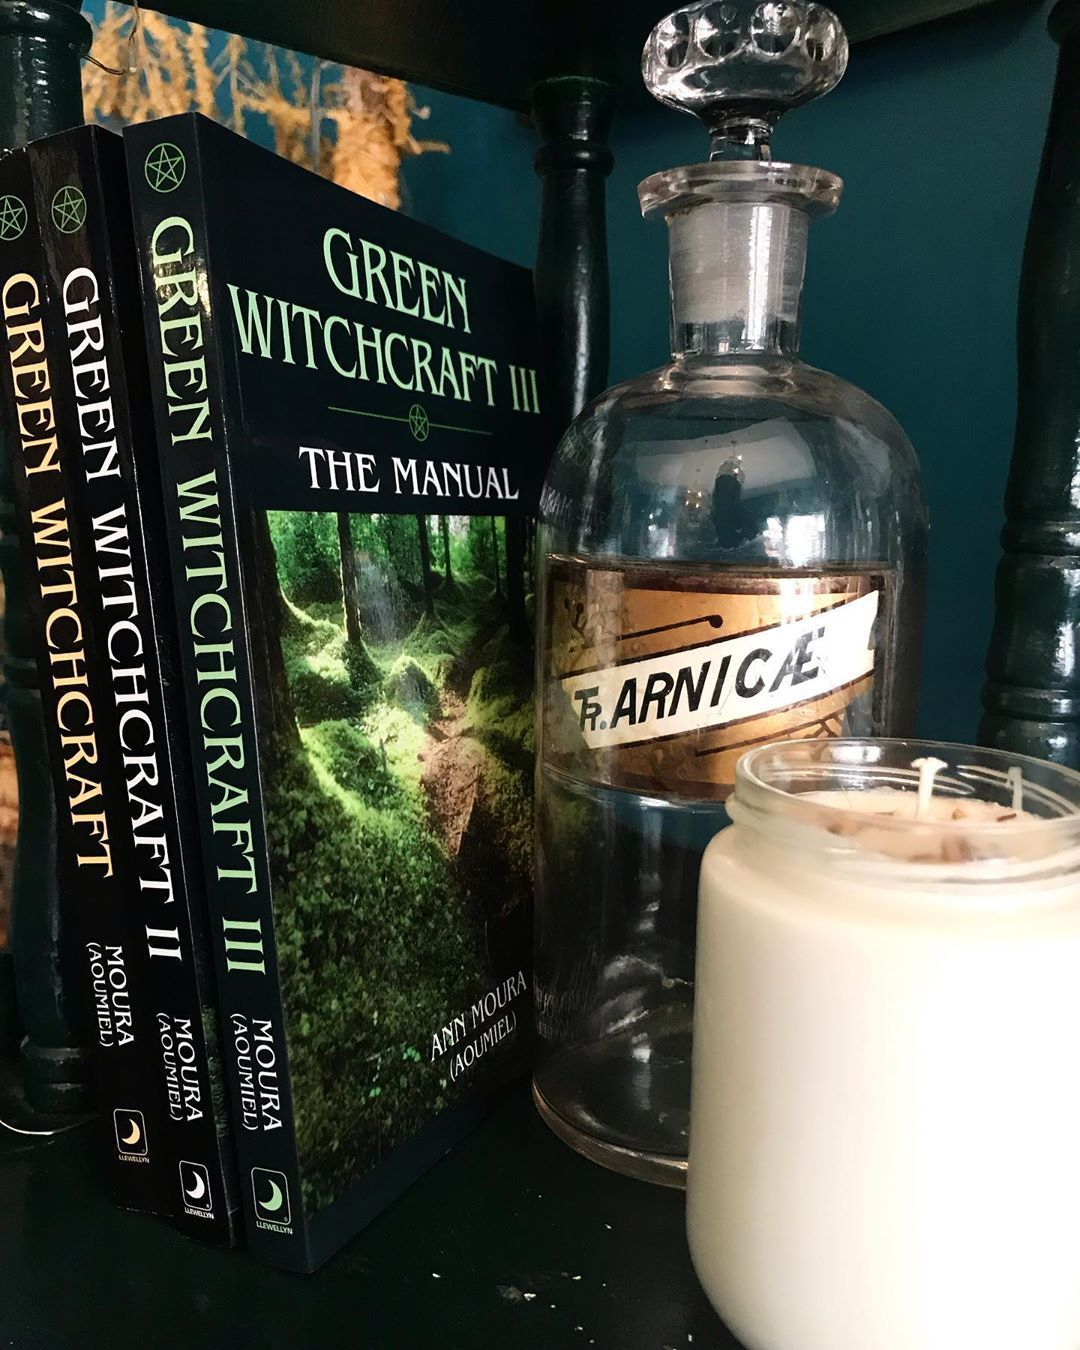 Positive and practical, the Green Witchcraft series brings together the best of both modern Wicca, herb craft and folk magic. Explore magical training for the independent thinker, rituals for self-initiation, rites of passage and attune to the cycles of nature and the universal powers. . . .  #apothecary #herbs #herbalmedicine #plantallies #gratitude #handmade #natural #magic #witchy #craft #tradition #roncesvalles #dundaswest #toronto #vegan #crueltyfree #wares #potions #herbalist #ethicallysou #greenwitchcraft